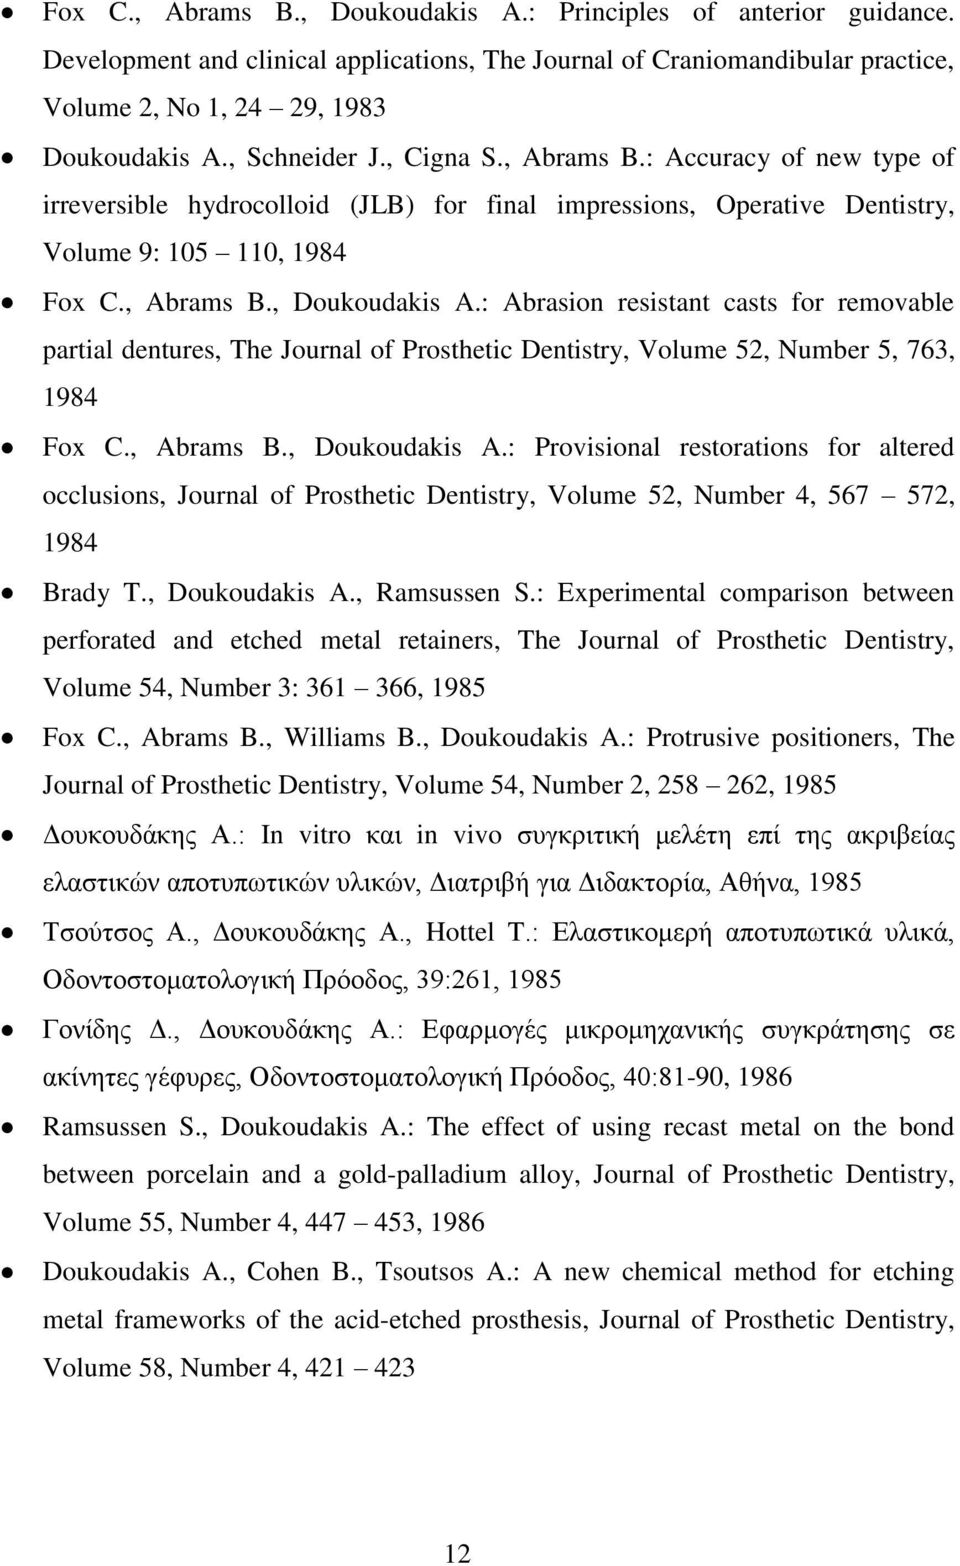 : Abrasion resistant casts for removable partial dentures, The Journal of Prosthetic Dentistry, Volume 52, Number 5, 763, 1984 Fox C., Abrams B., Doukoudakis A.